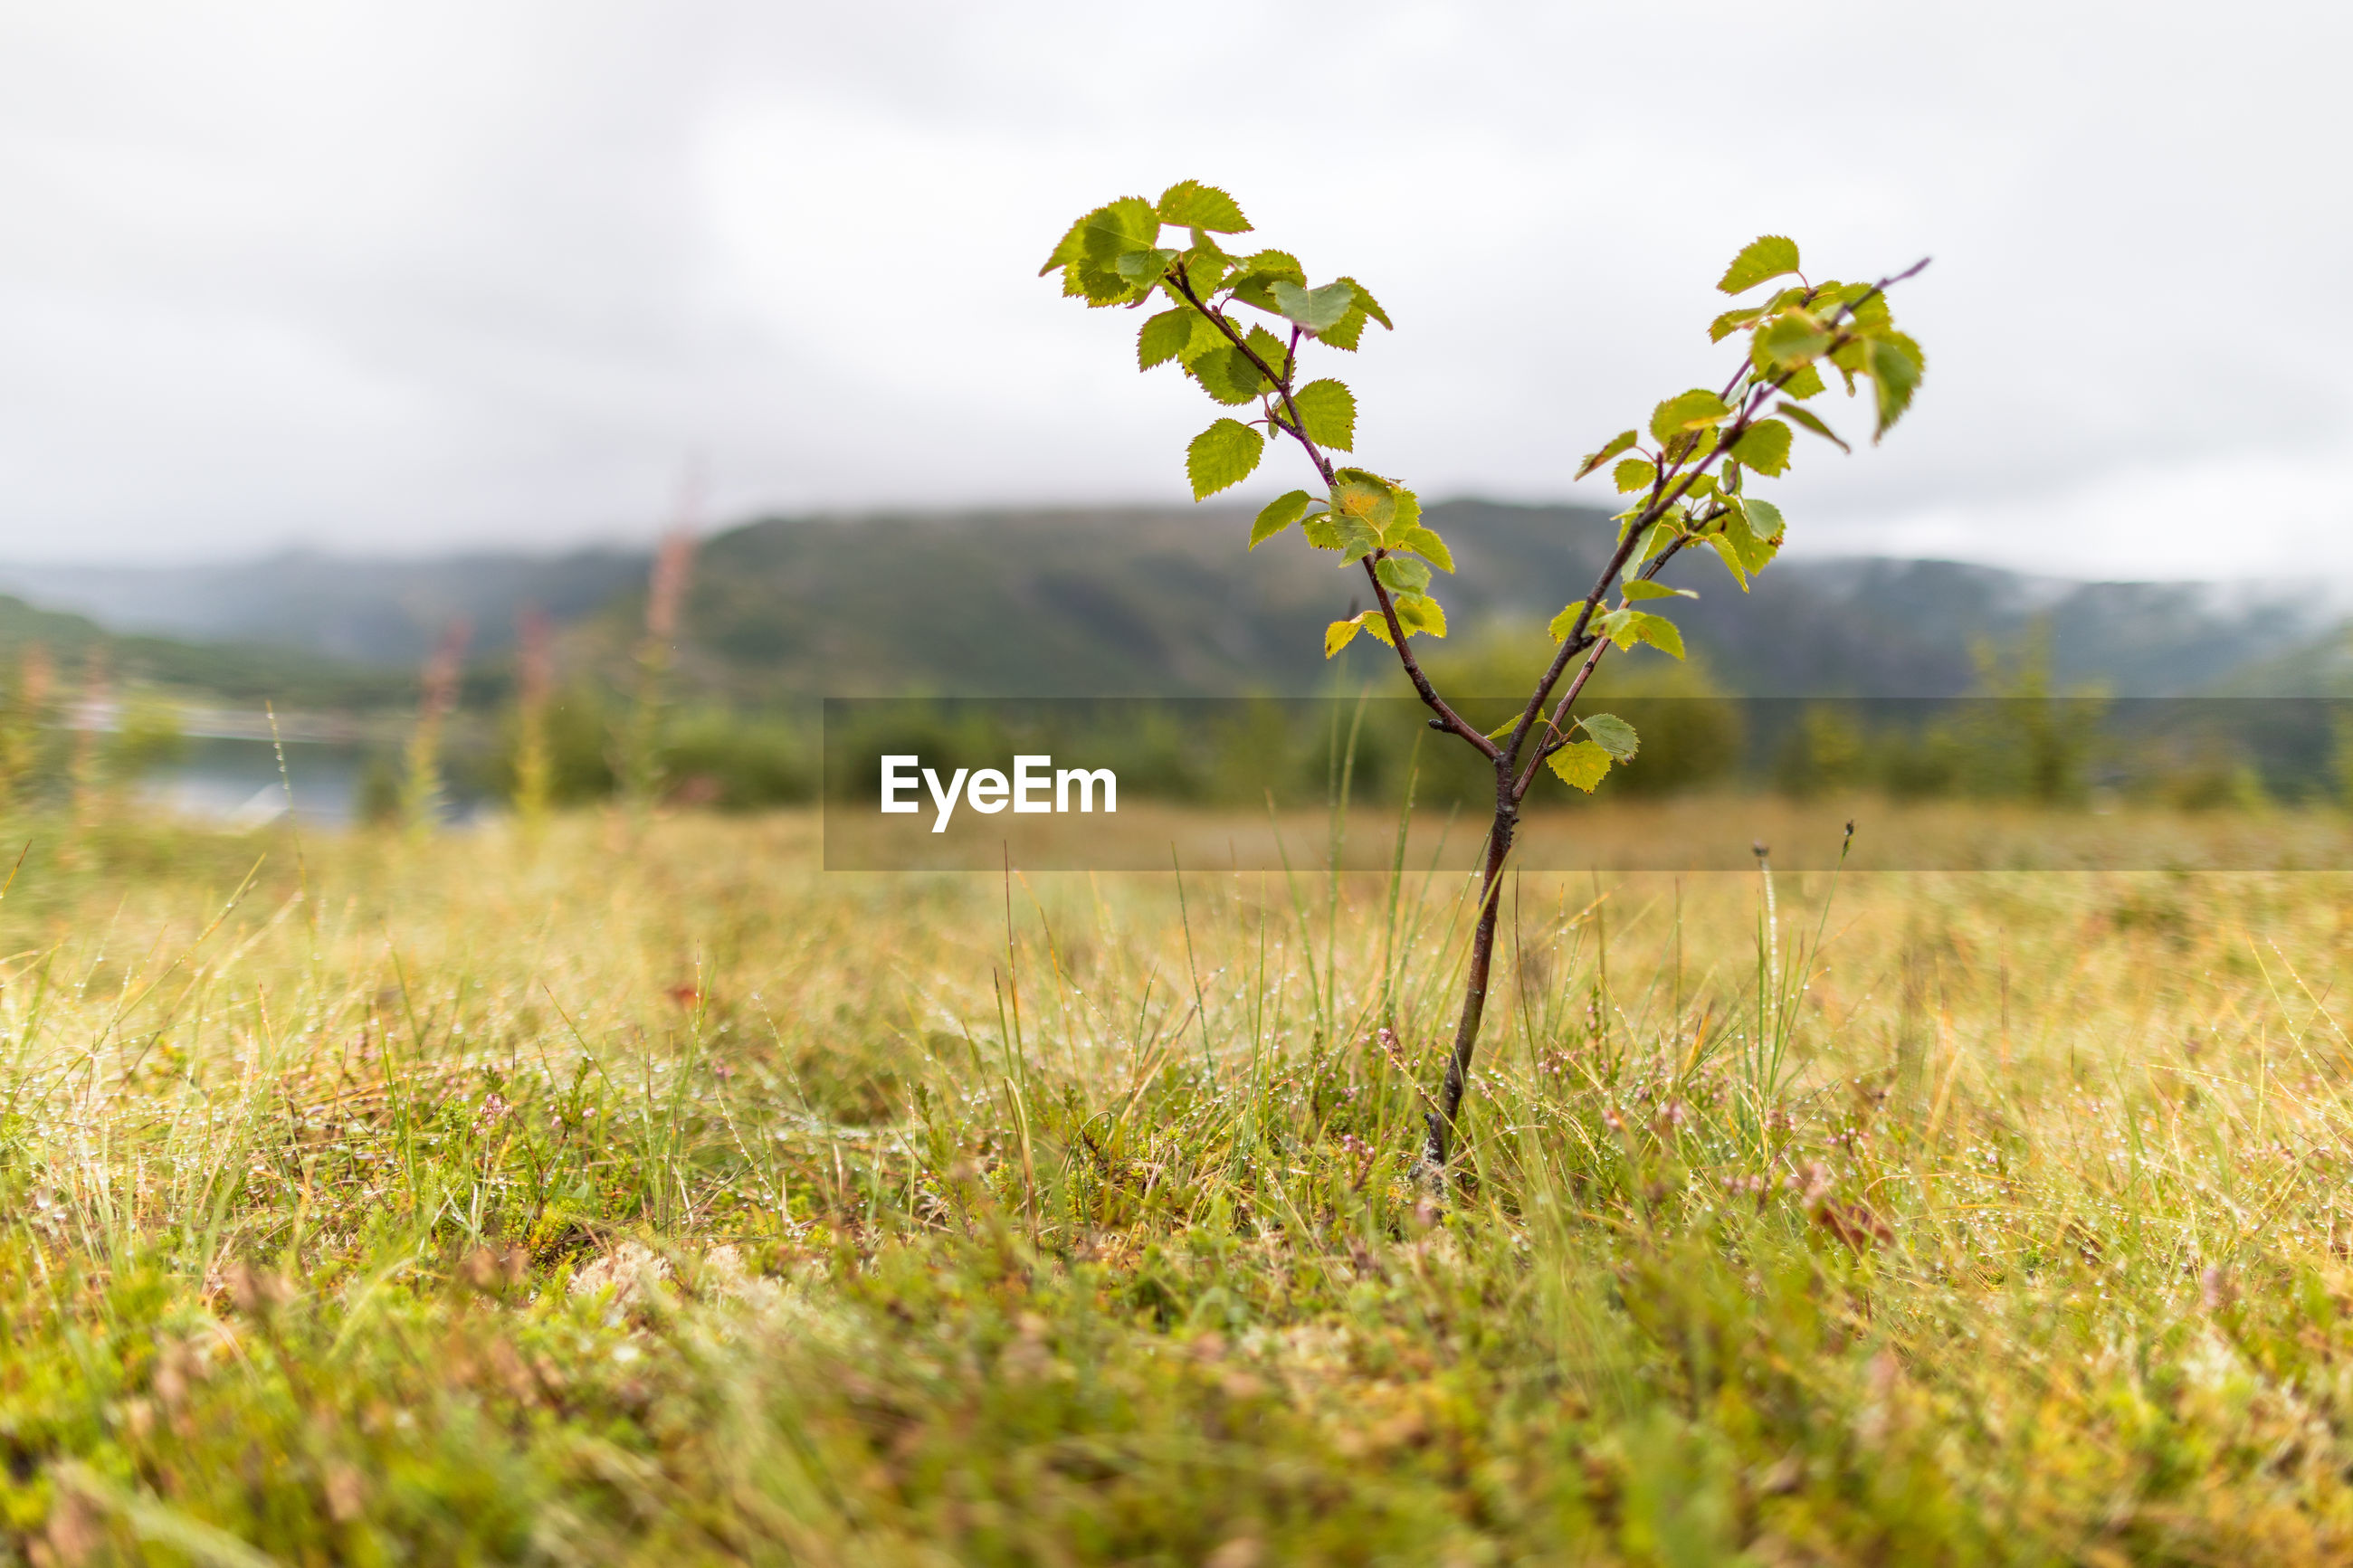 CLOSE-UP OF PLANT ON FIELD AGAINST SKY